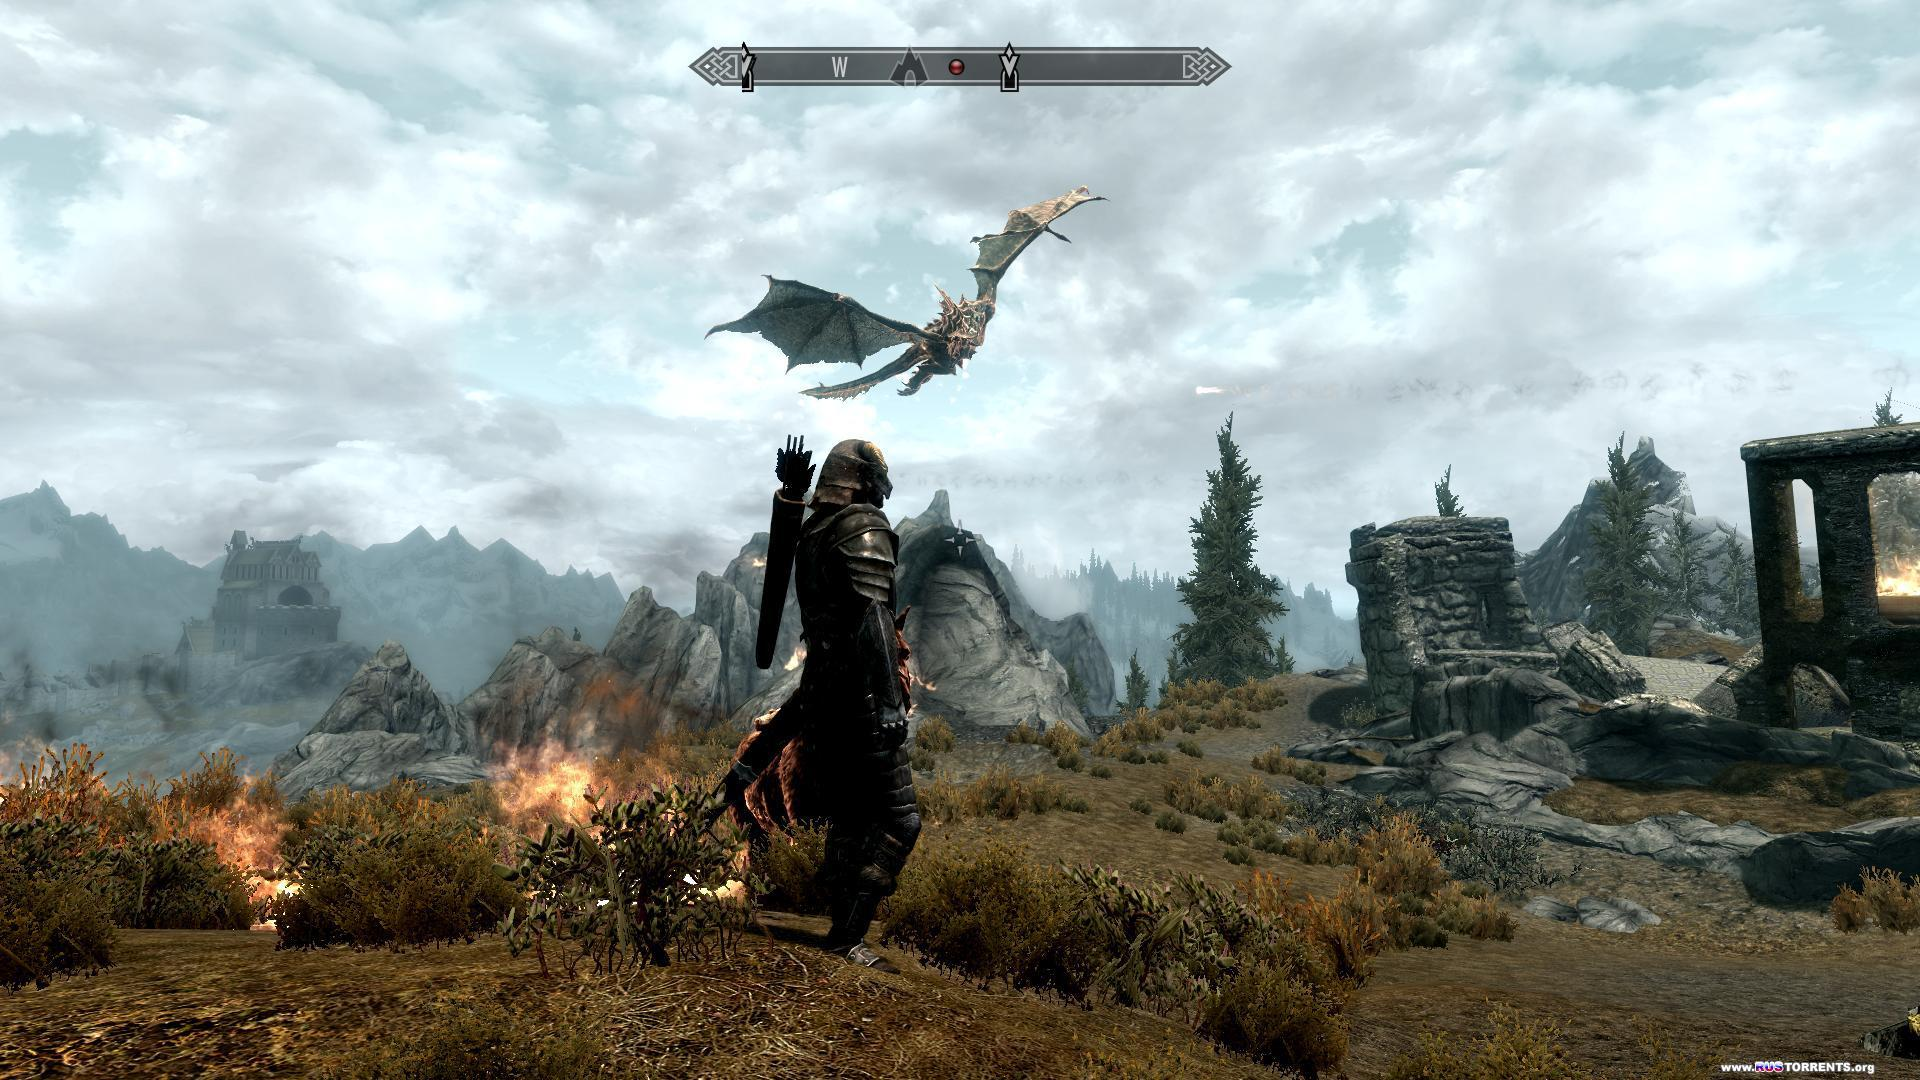 The Elder Scrolls V: Skyrim (Bethesda Softworks - 1С-Софтклаб) (1.9.32.0.8) (RUS-ENG) [Repack] От R.G. Revenants